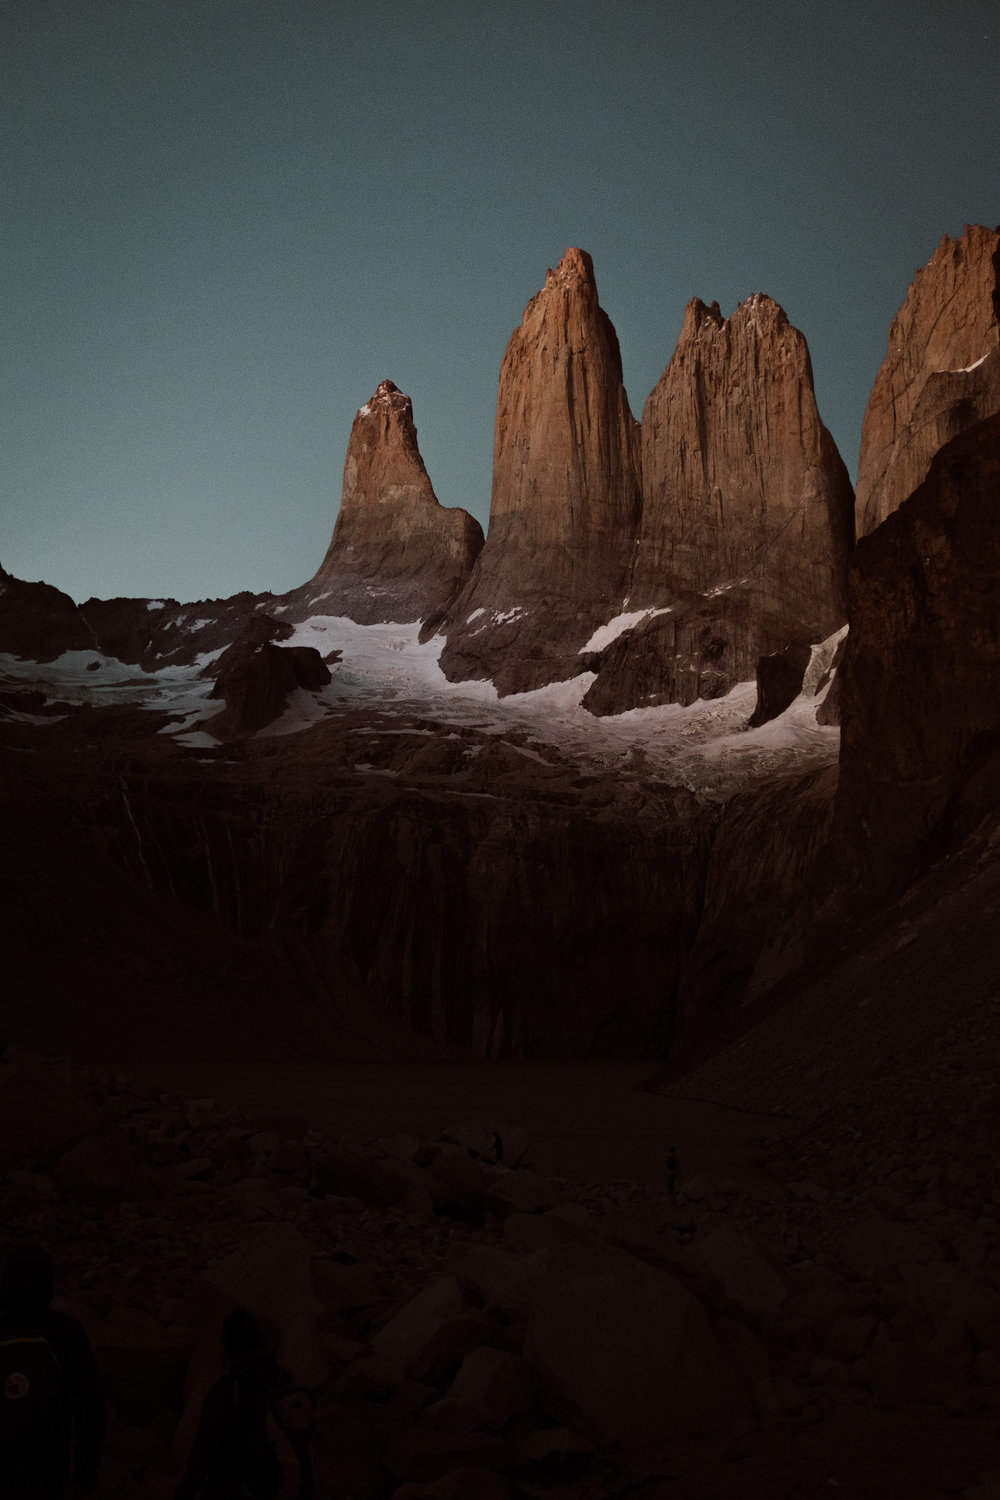 patagonia-adventure-photographer-90.jpg